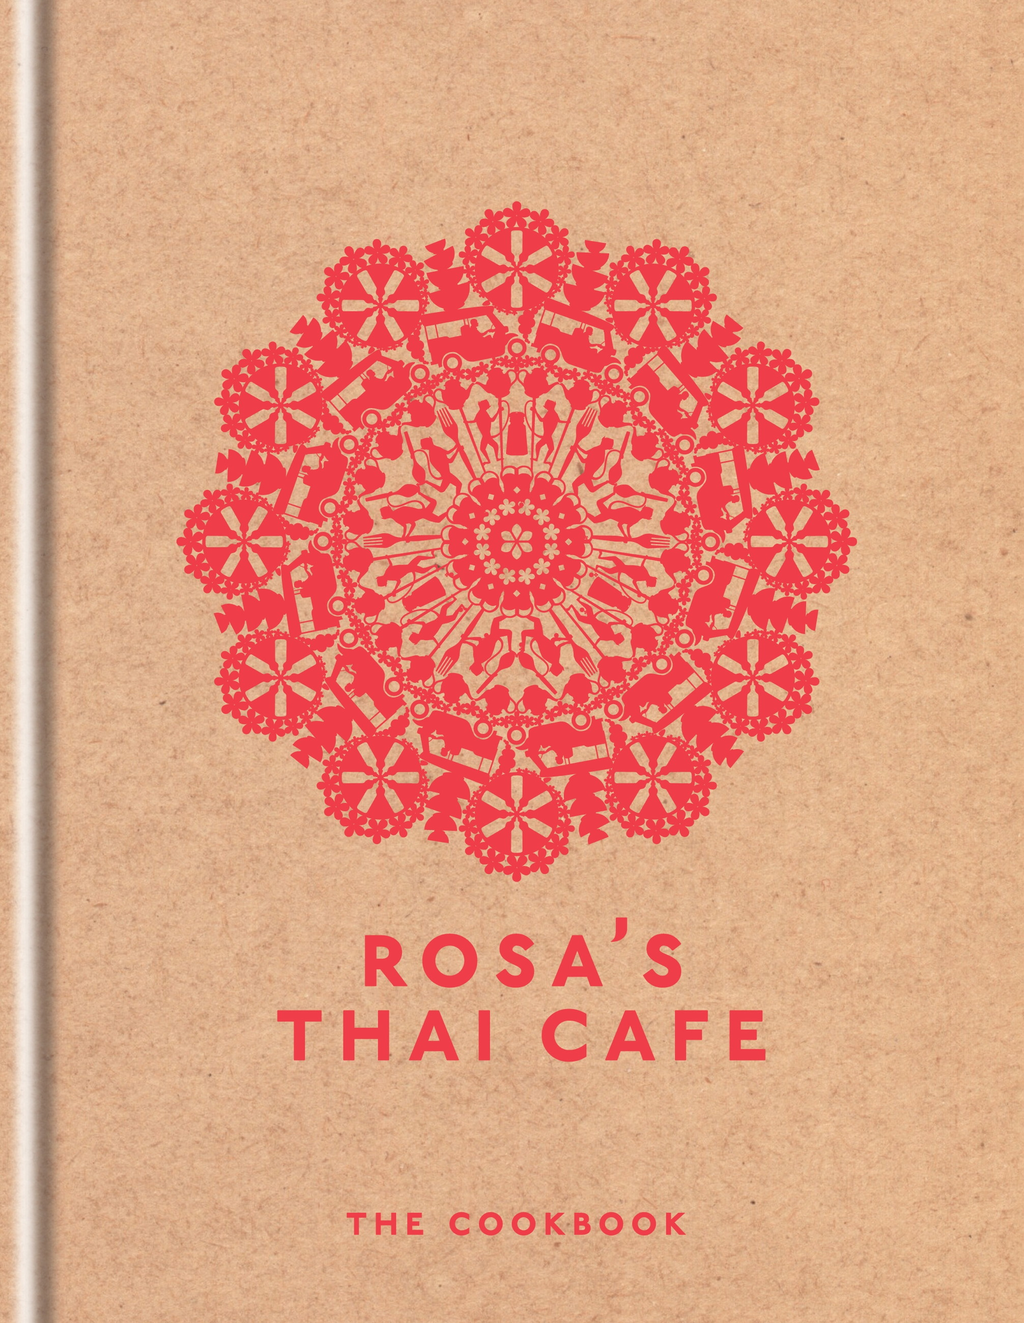 Rosa's Thai Cafe The Cookbook